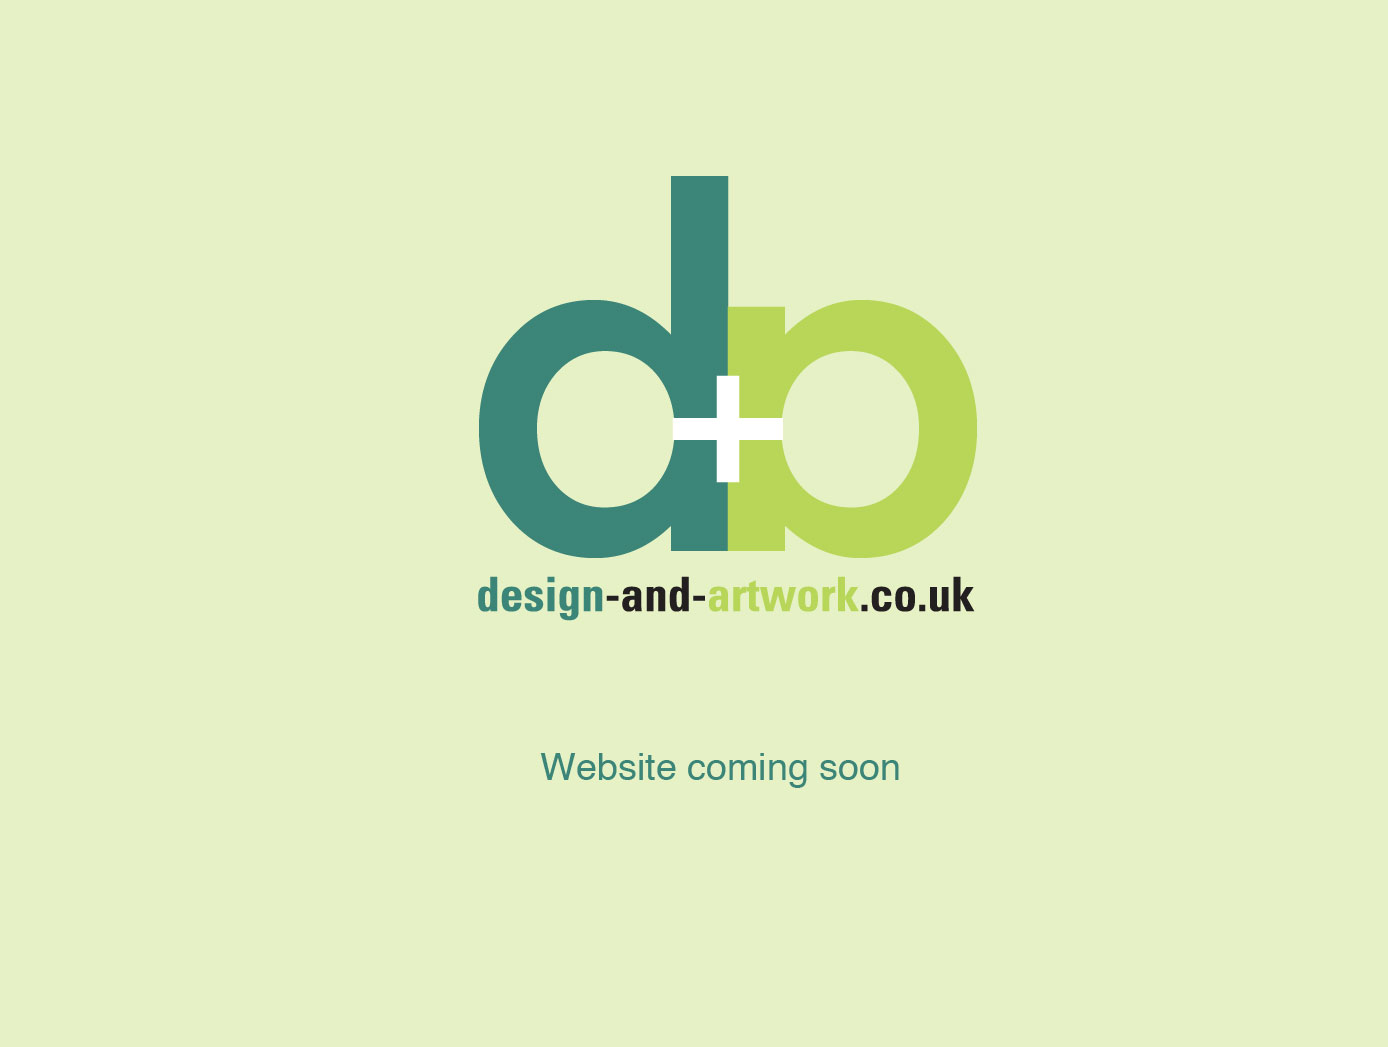 design-and-artwork.co.uk Call 07920 for a competitive graphic design quote.